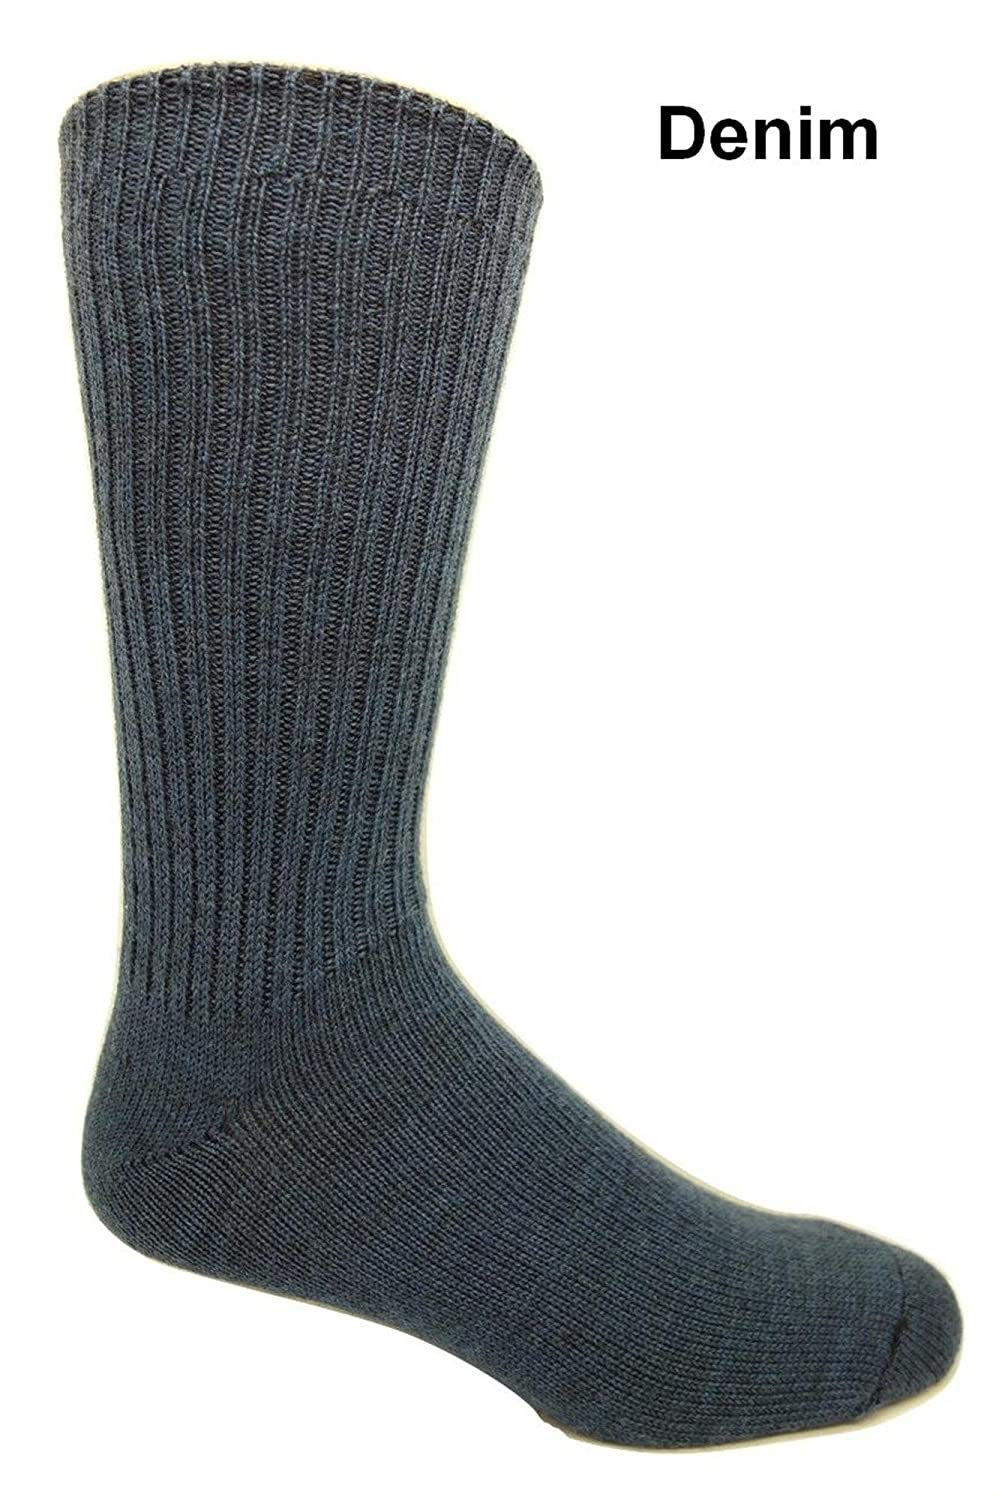 Sox Shop Merino Casual Socks